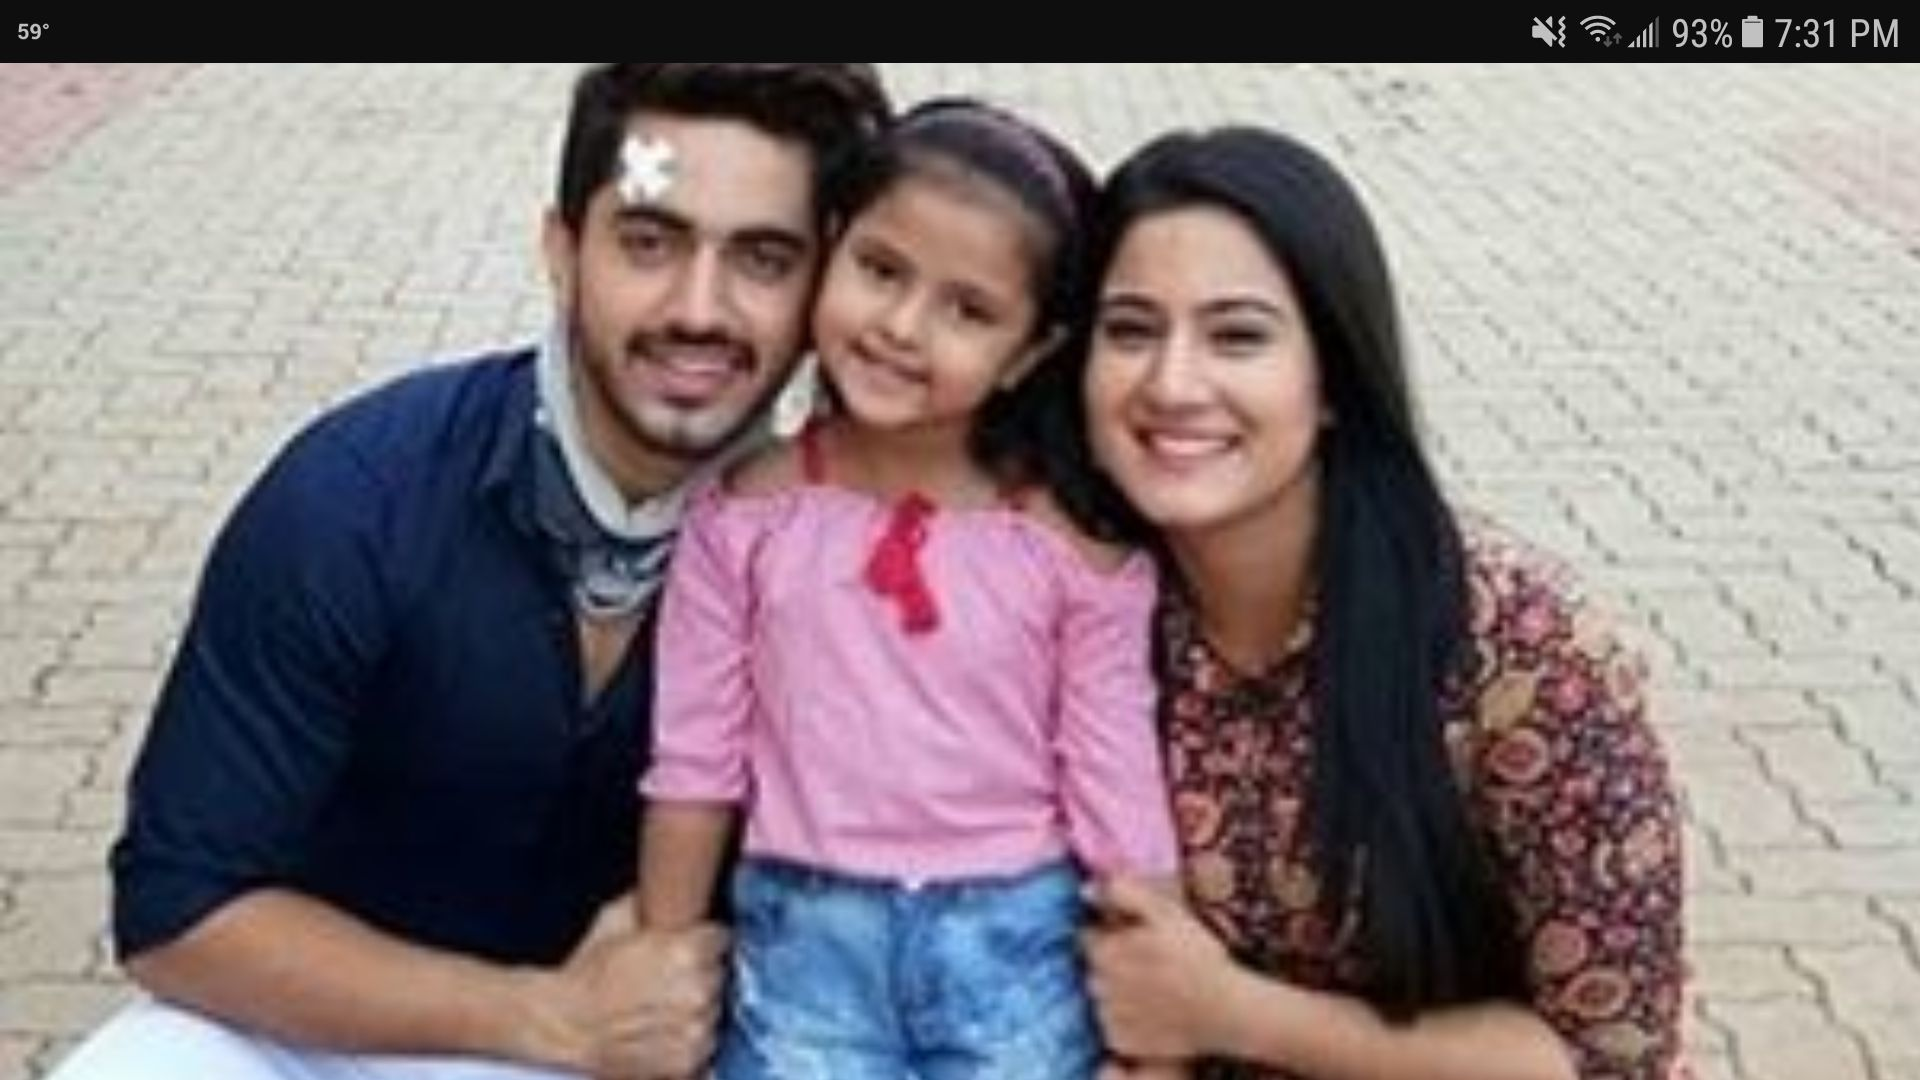 Avneil - being with you - avni's punishment ! - Wattpad